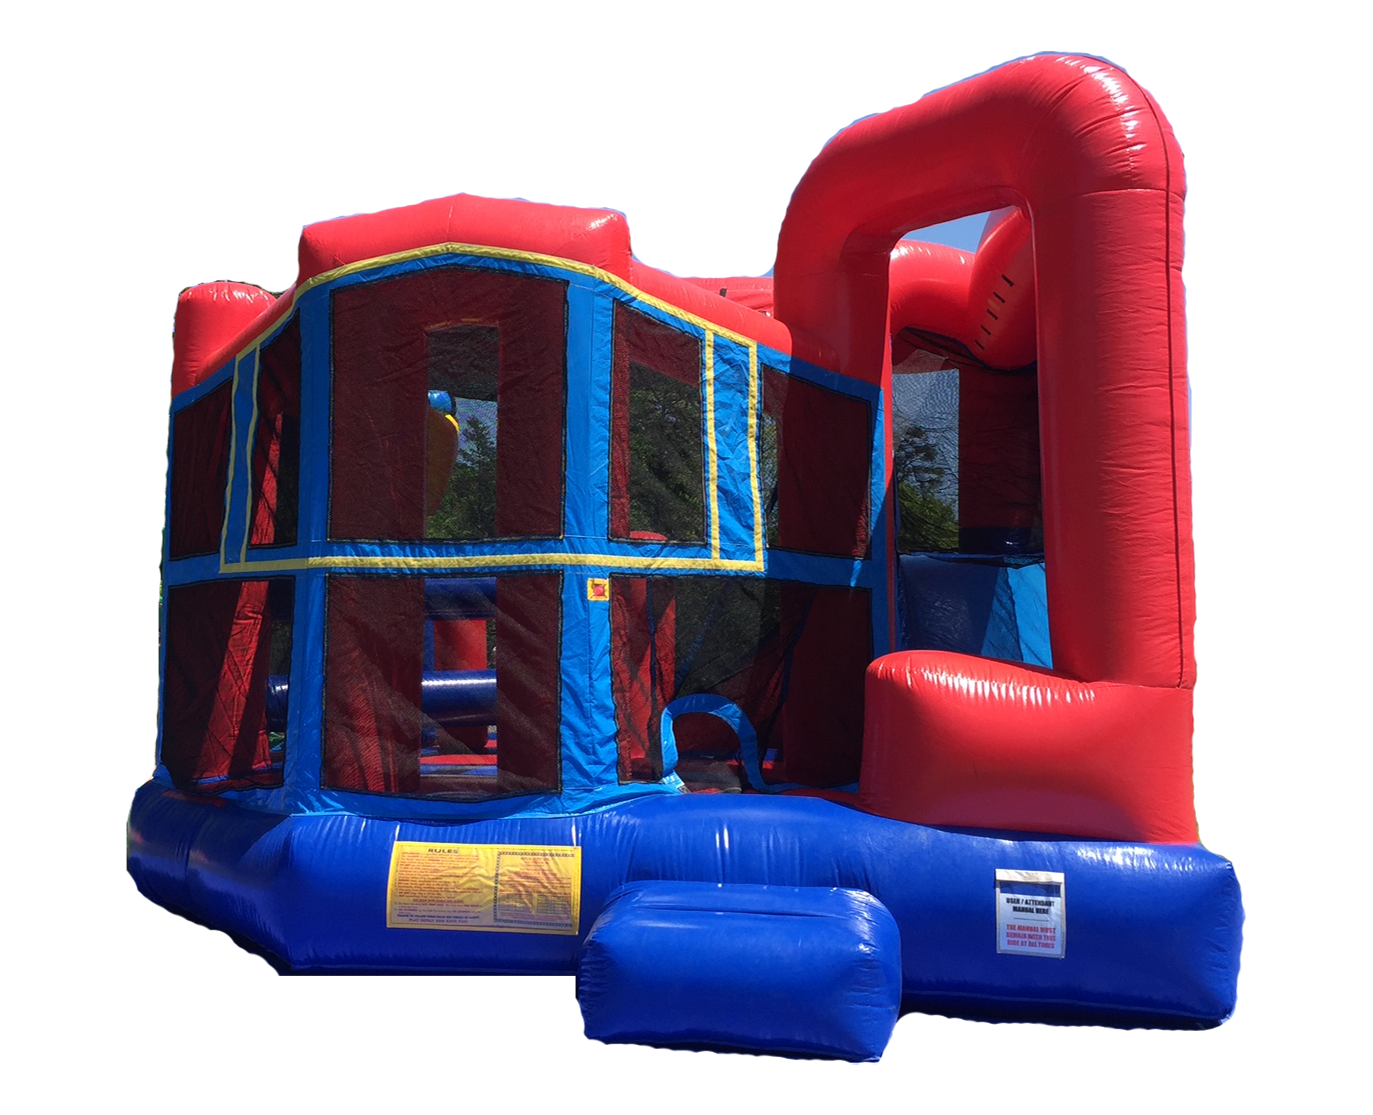 5 n 1 Combo Inflatable Blue